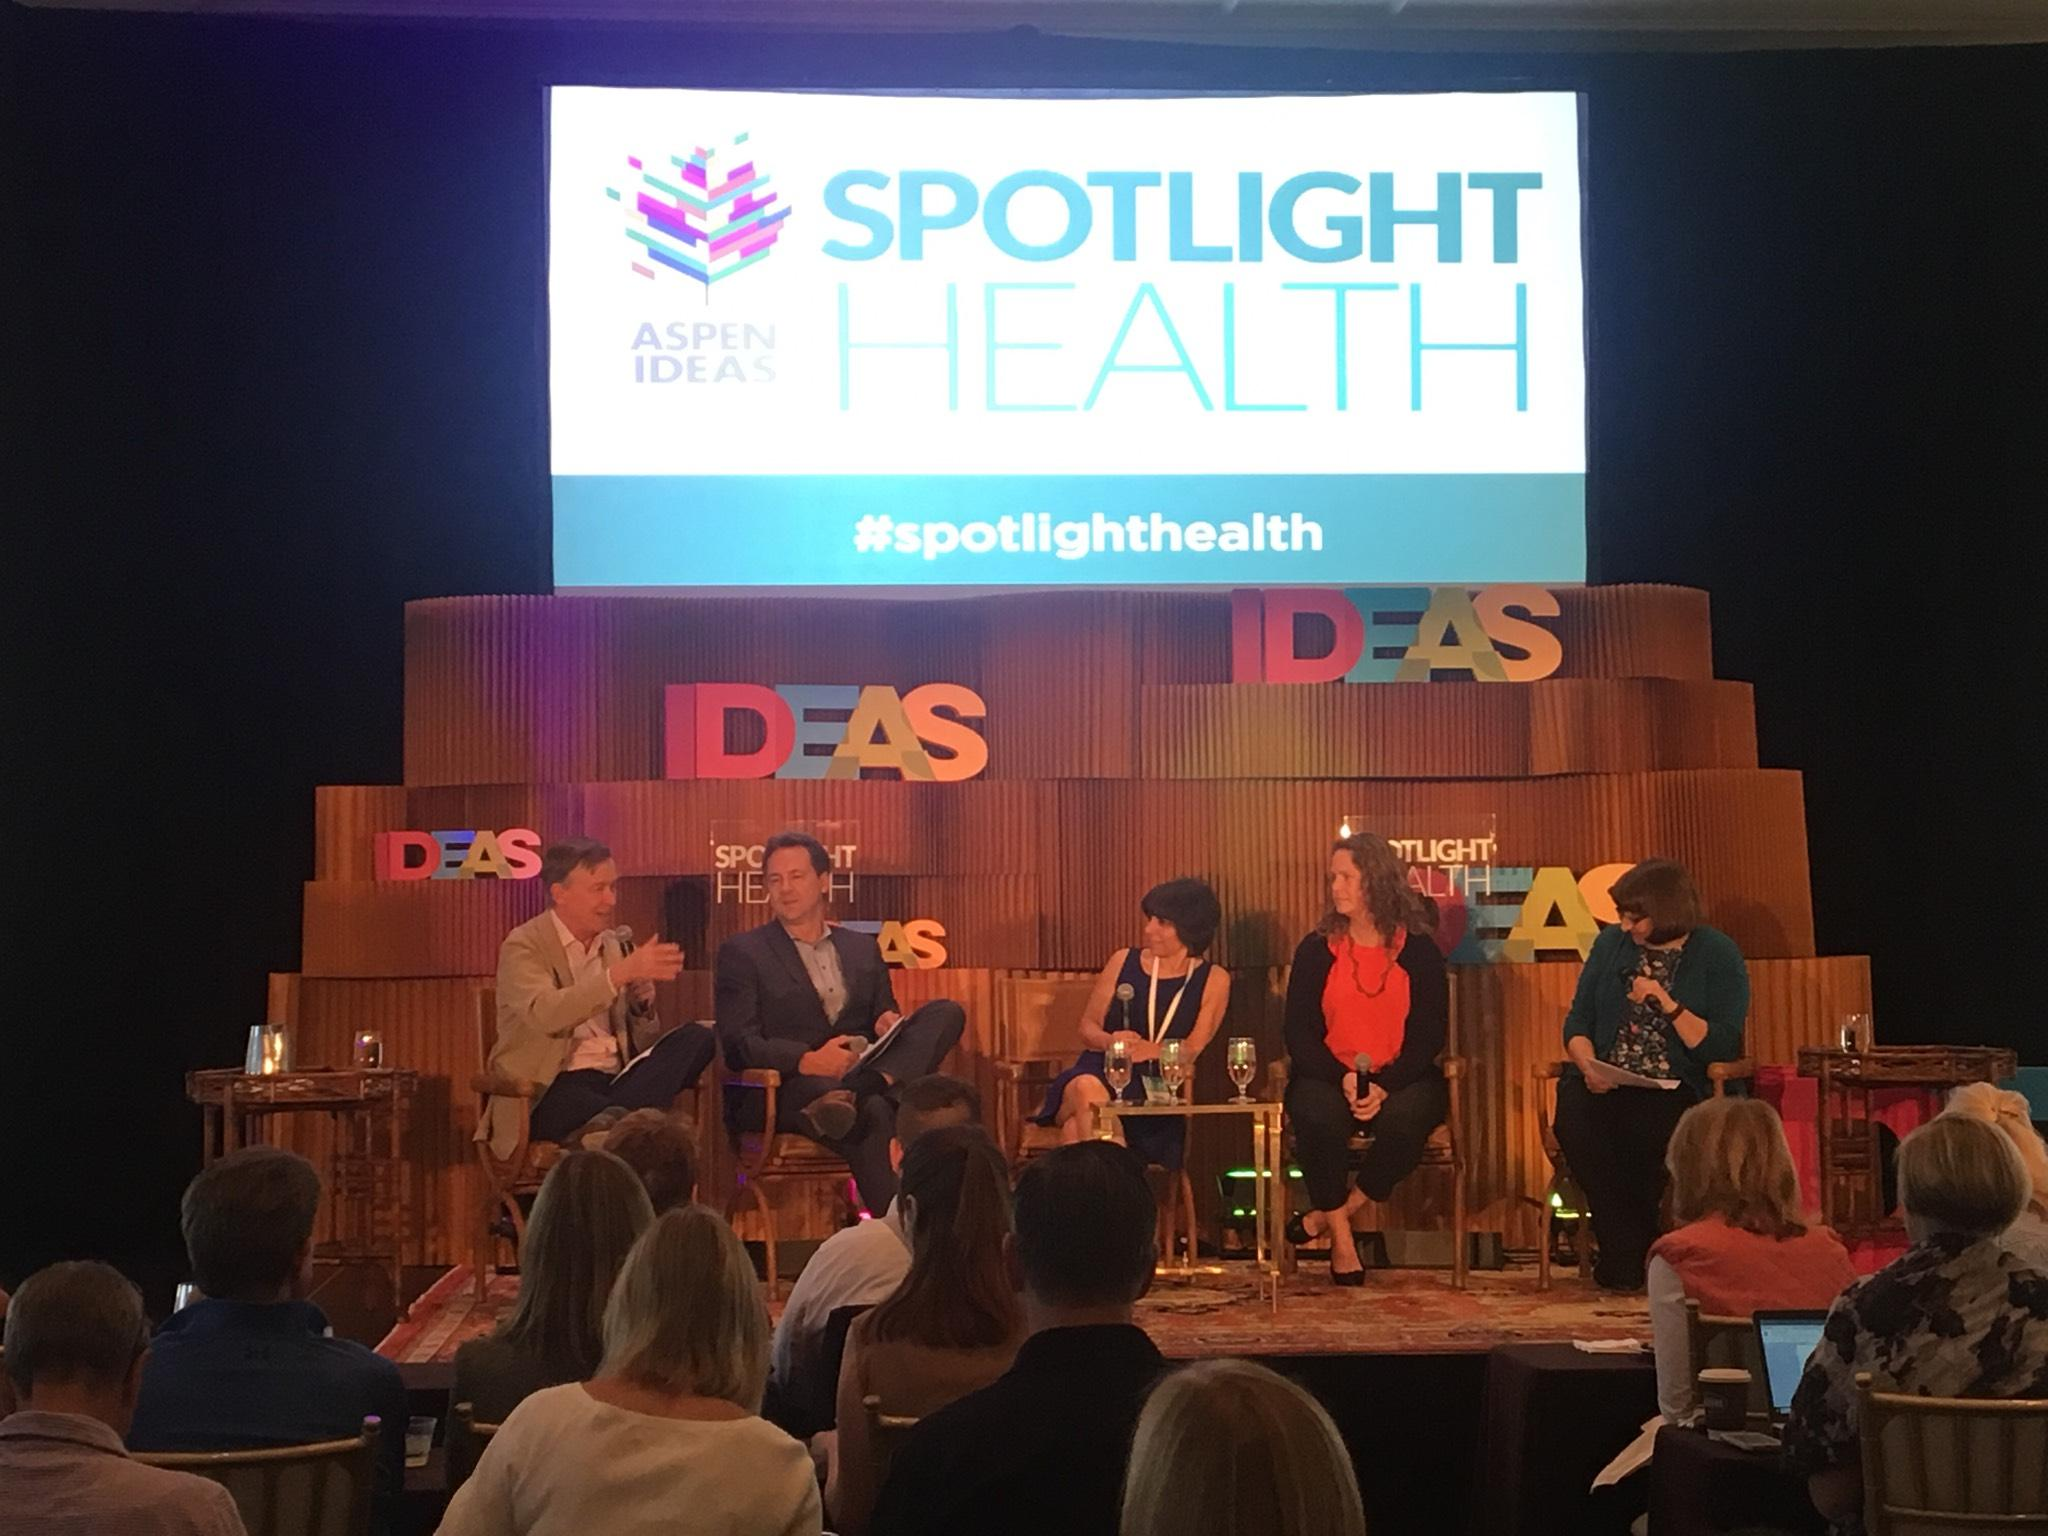 Aspen Ideas Festival 2018: The State Of The State Of Health